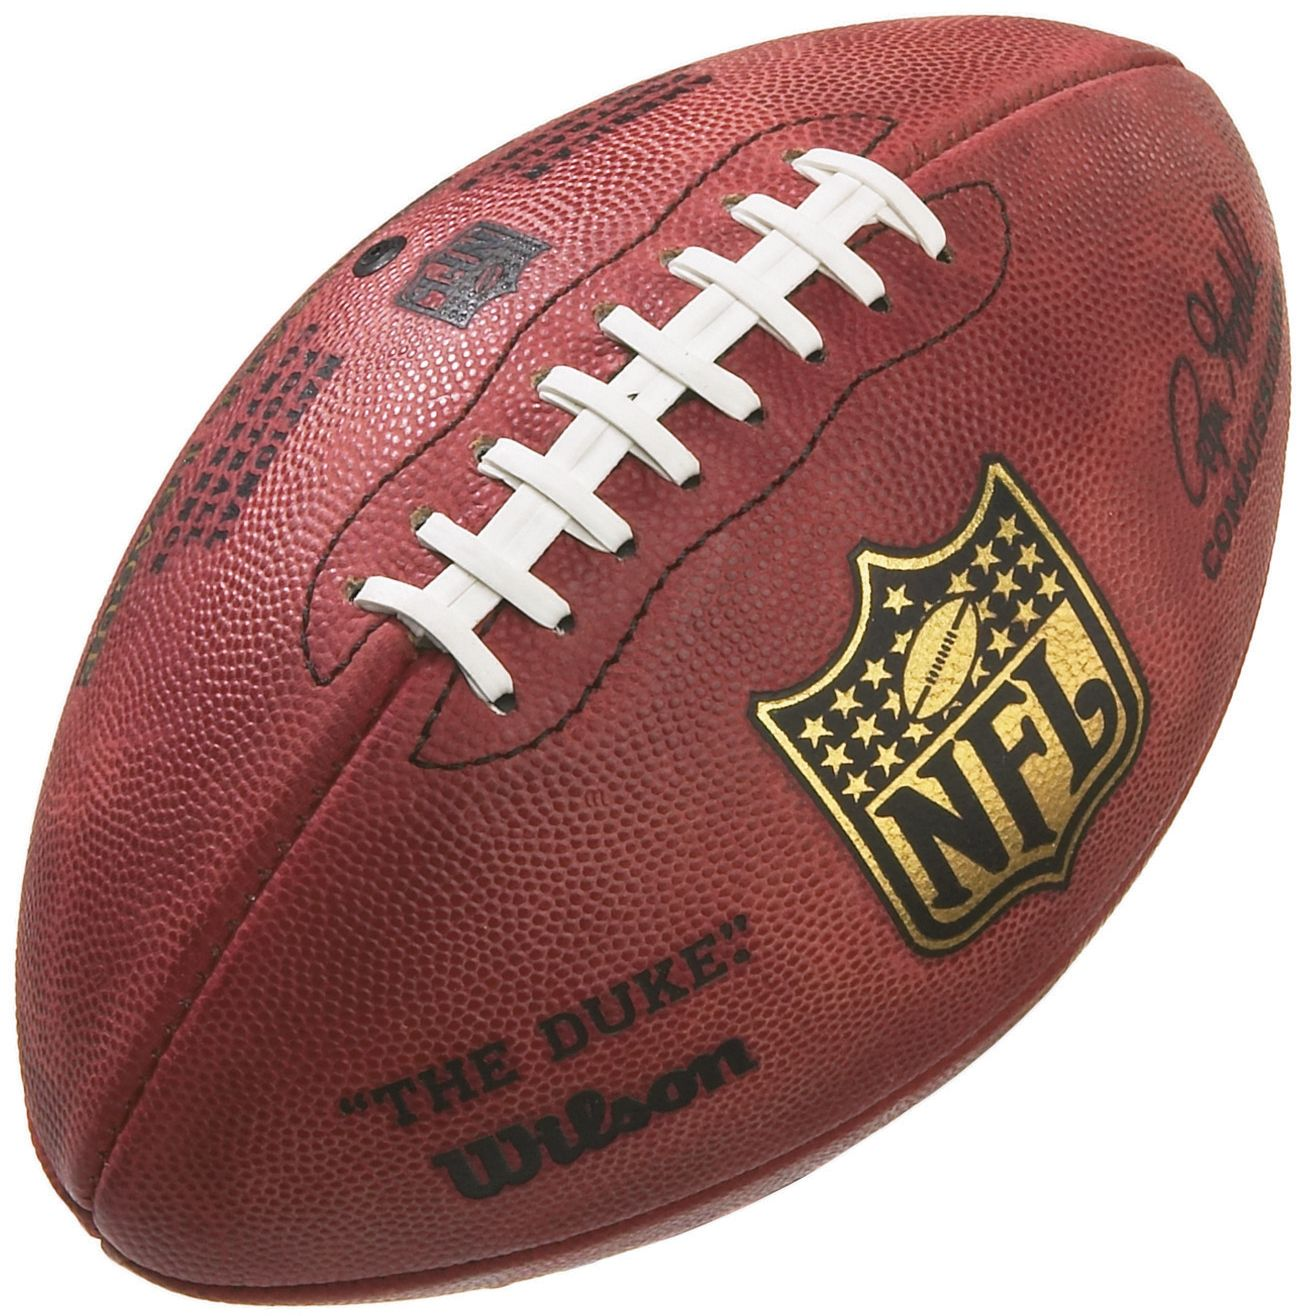 Wilson Nfl The Duke Official Football Wilunflgmbllffcftb